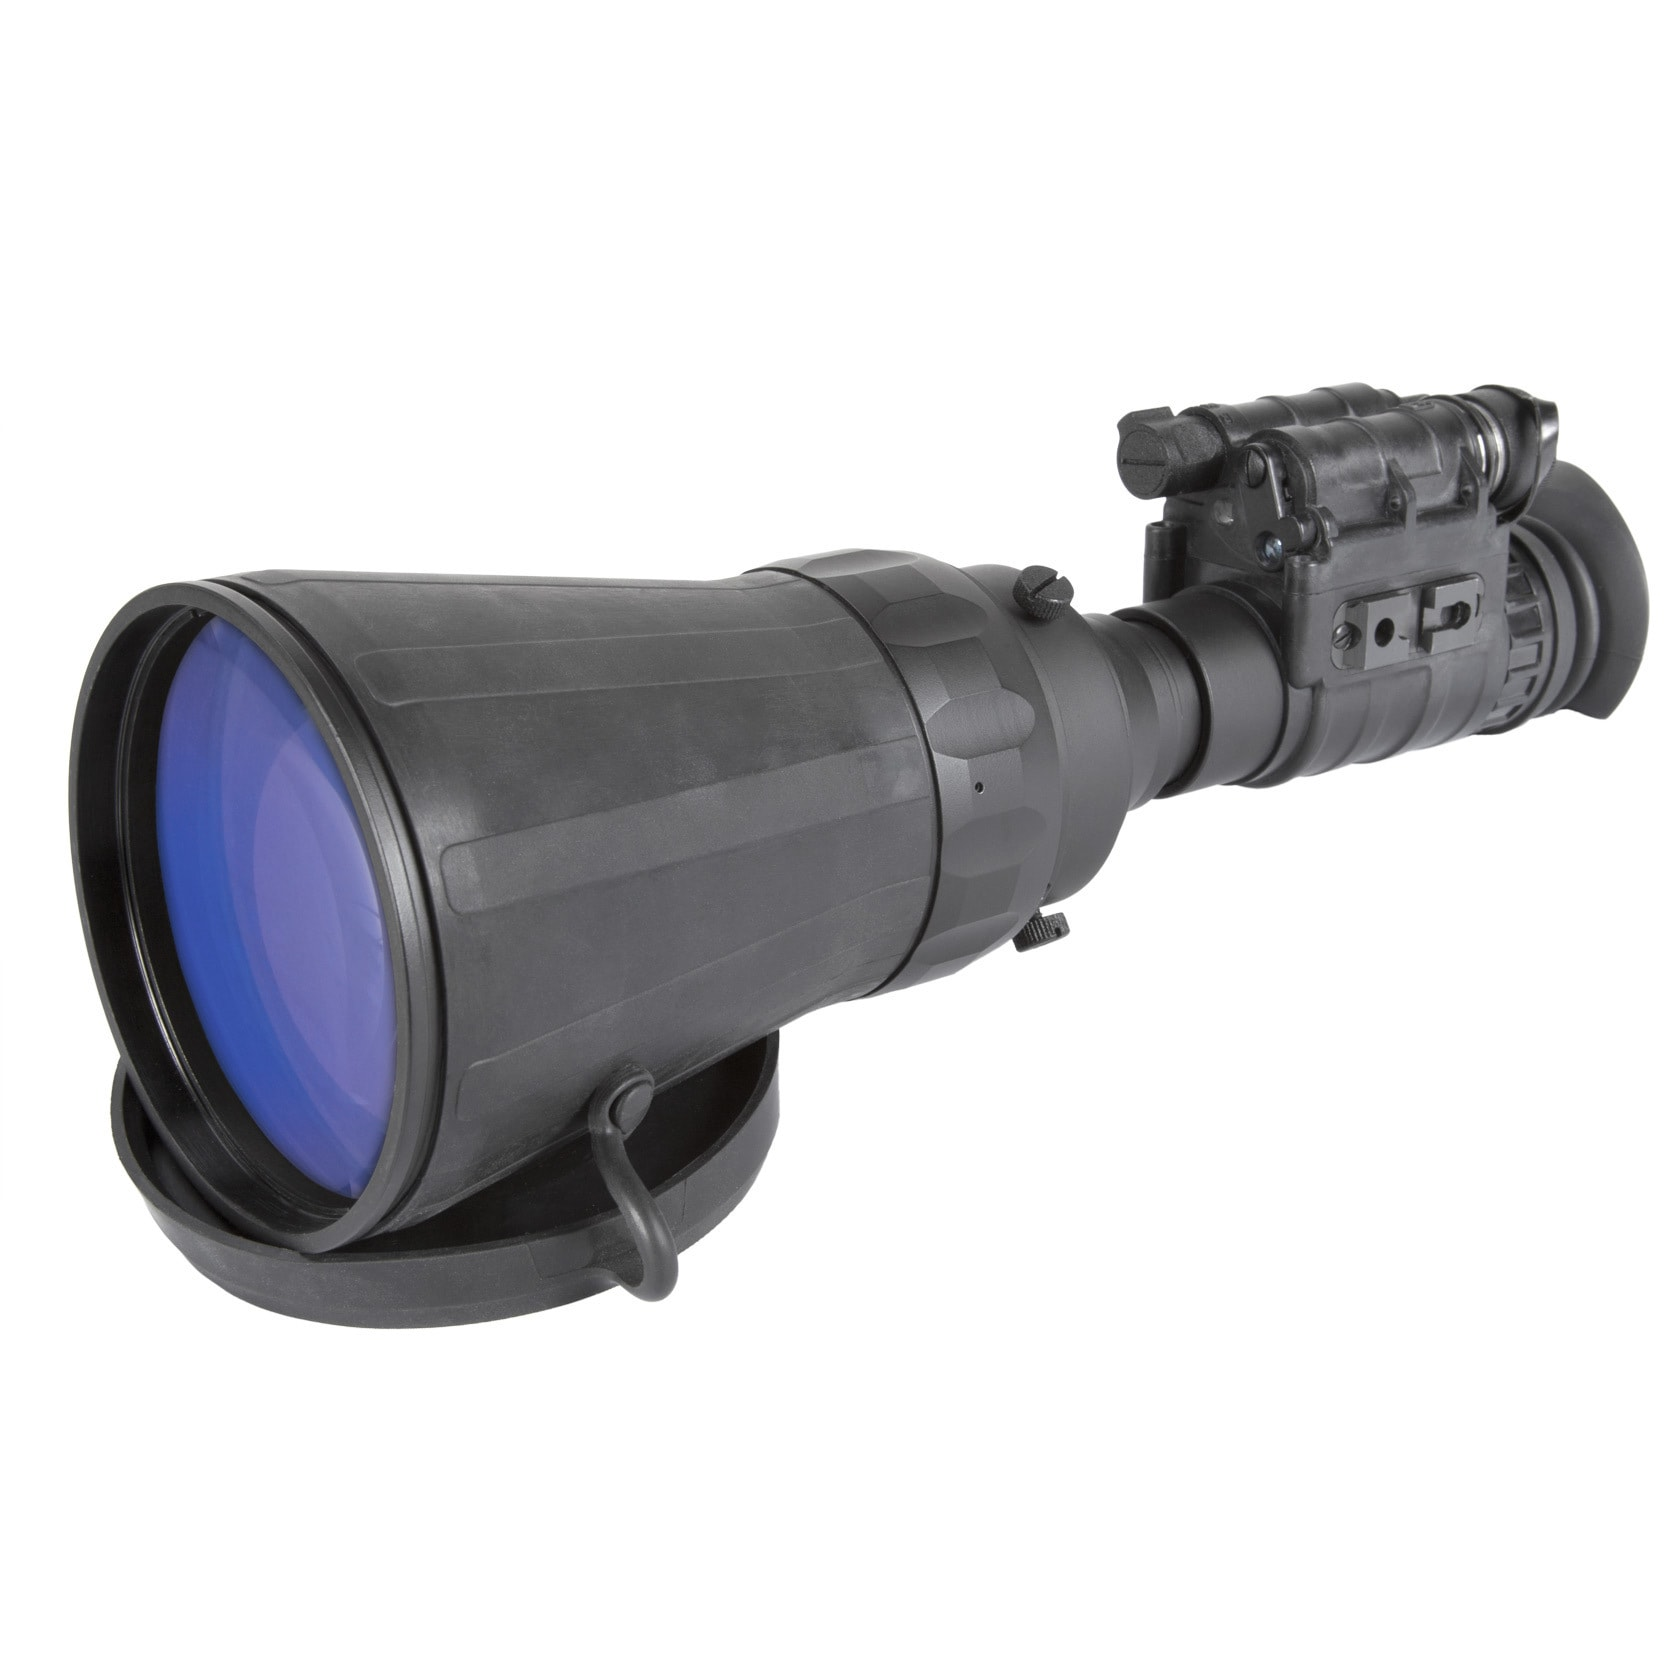 Click here to buy Armasight Avenger 10X ID MG Long Range Night Vision Monocular with Improved Definition Gen 2+ by Overstock.